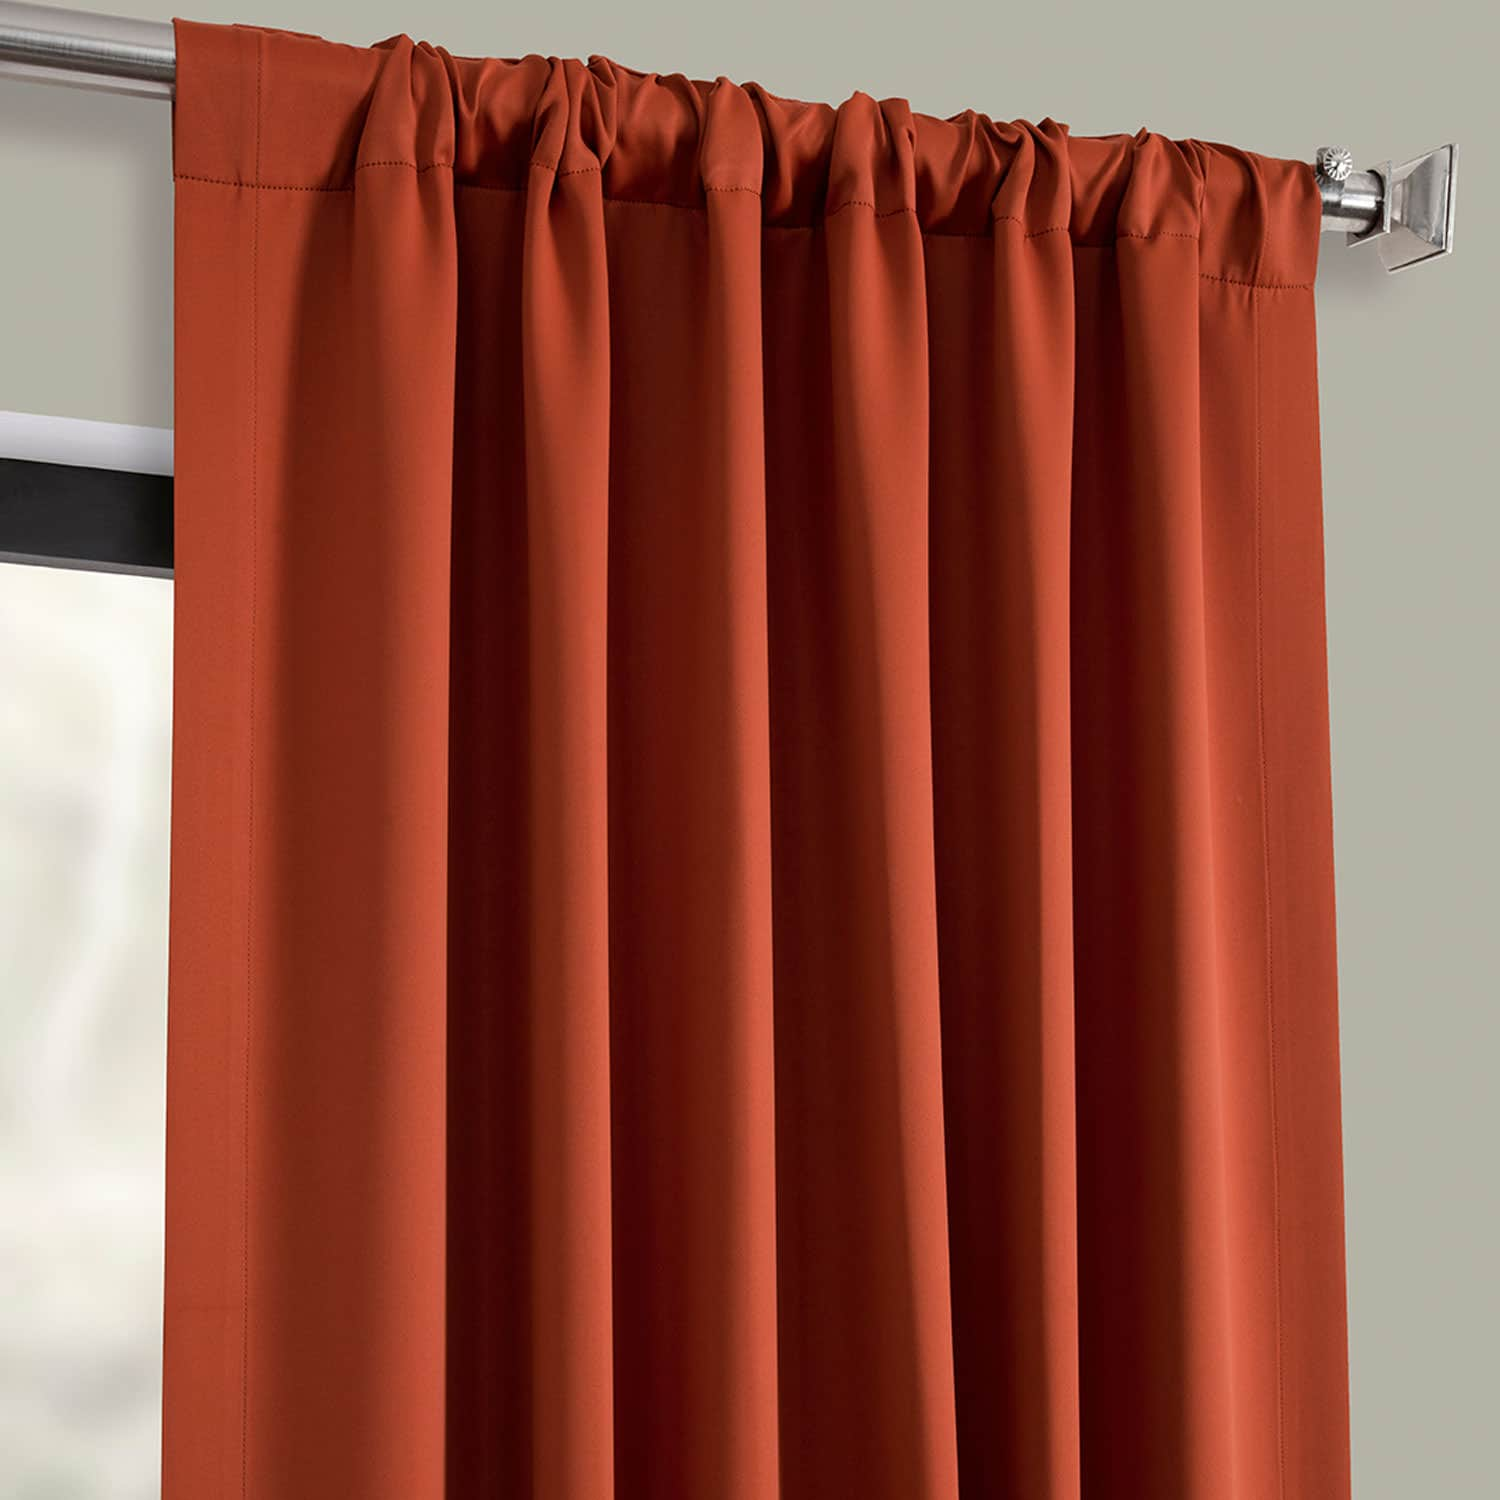 Blaze Room Darkening Curtain